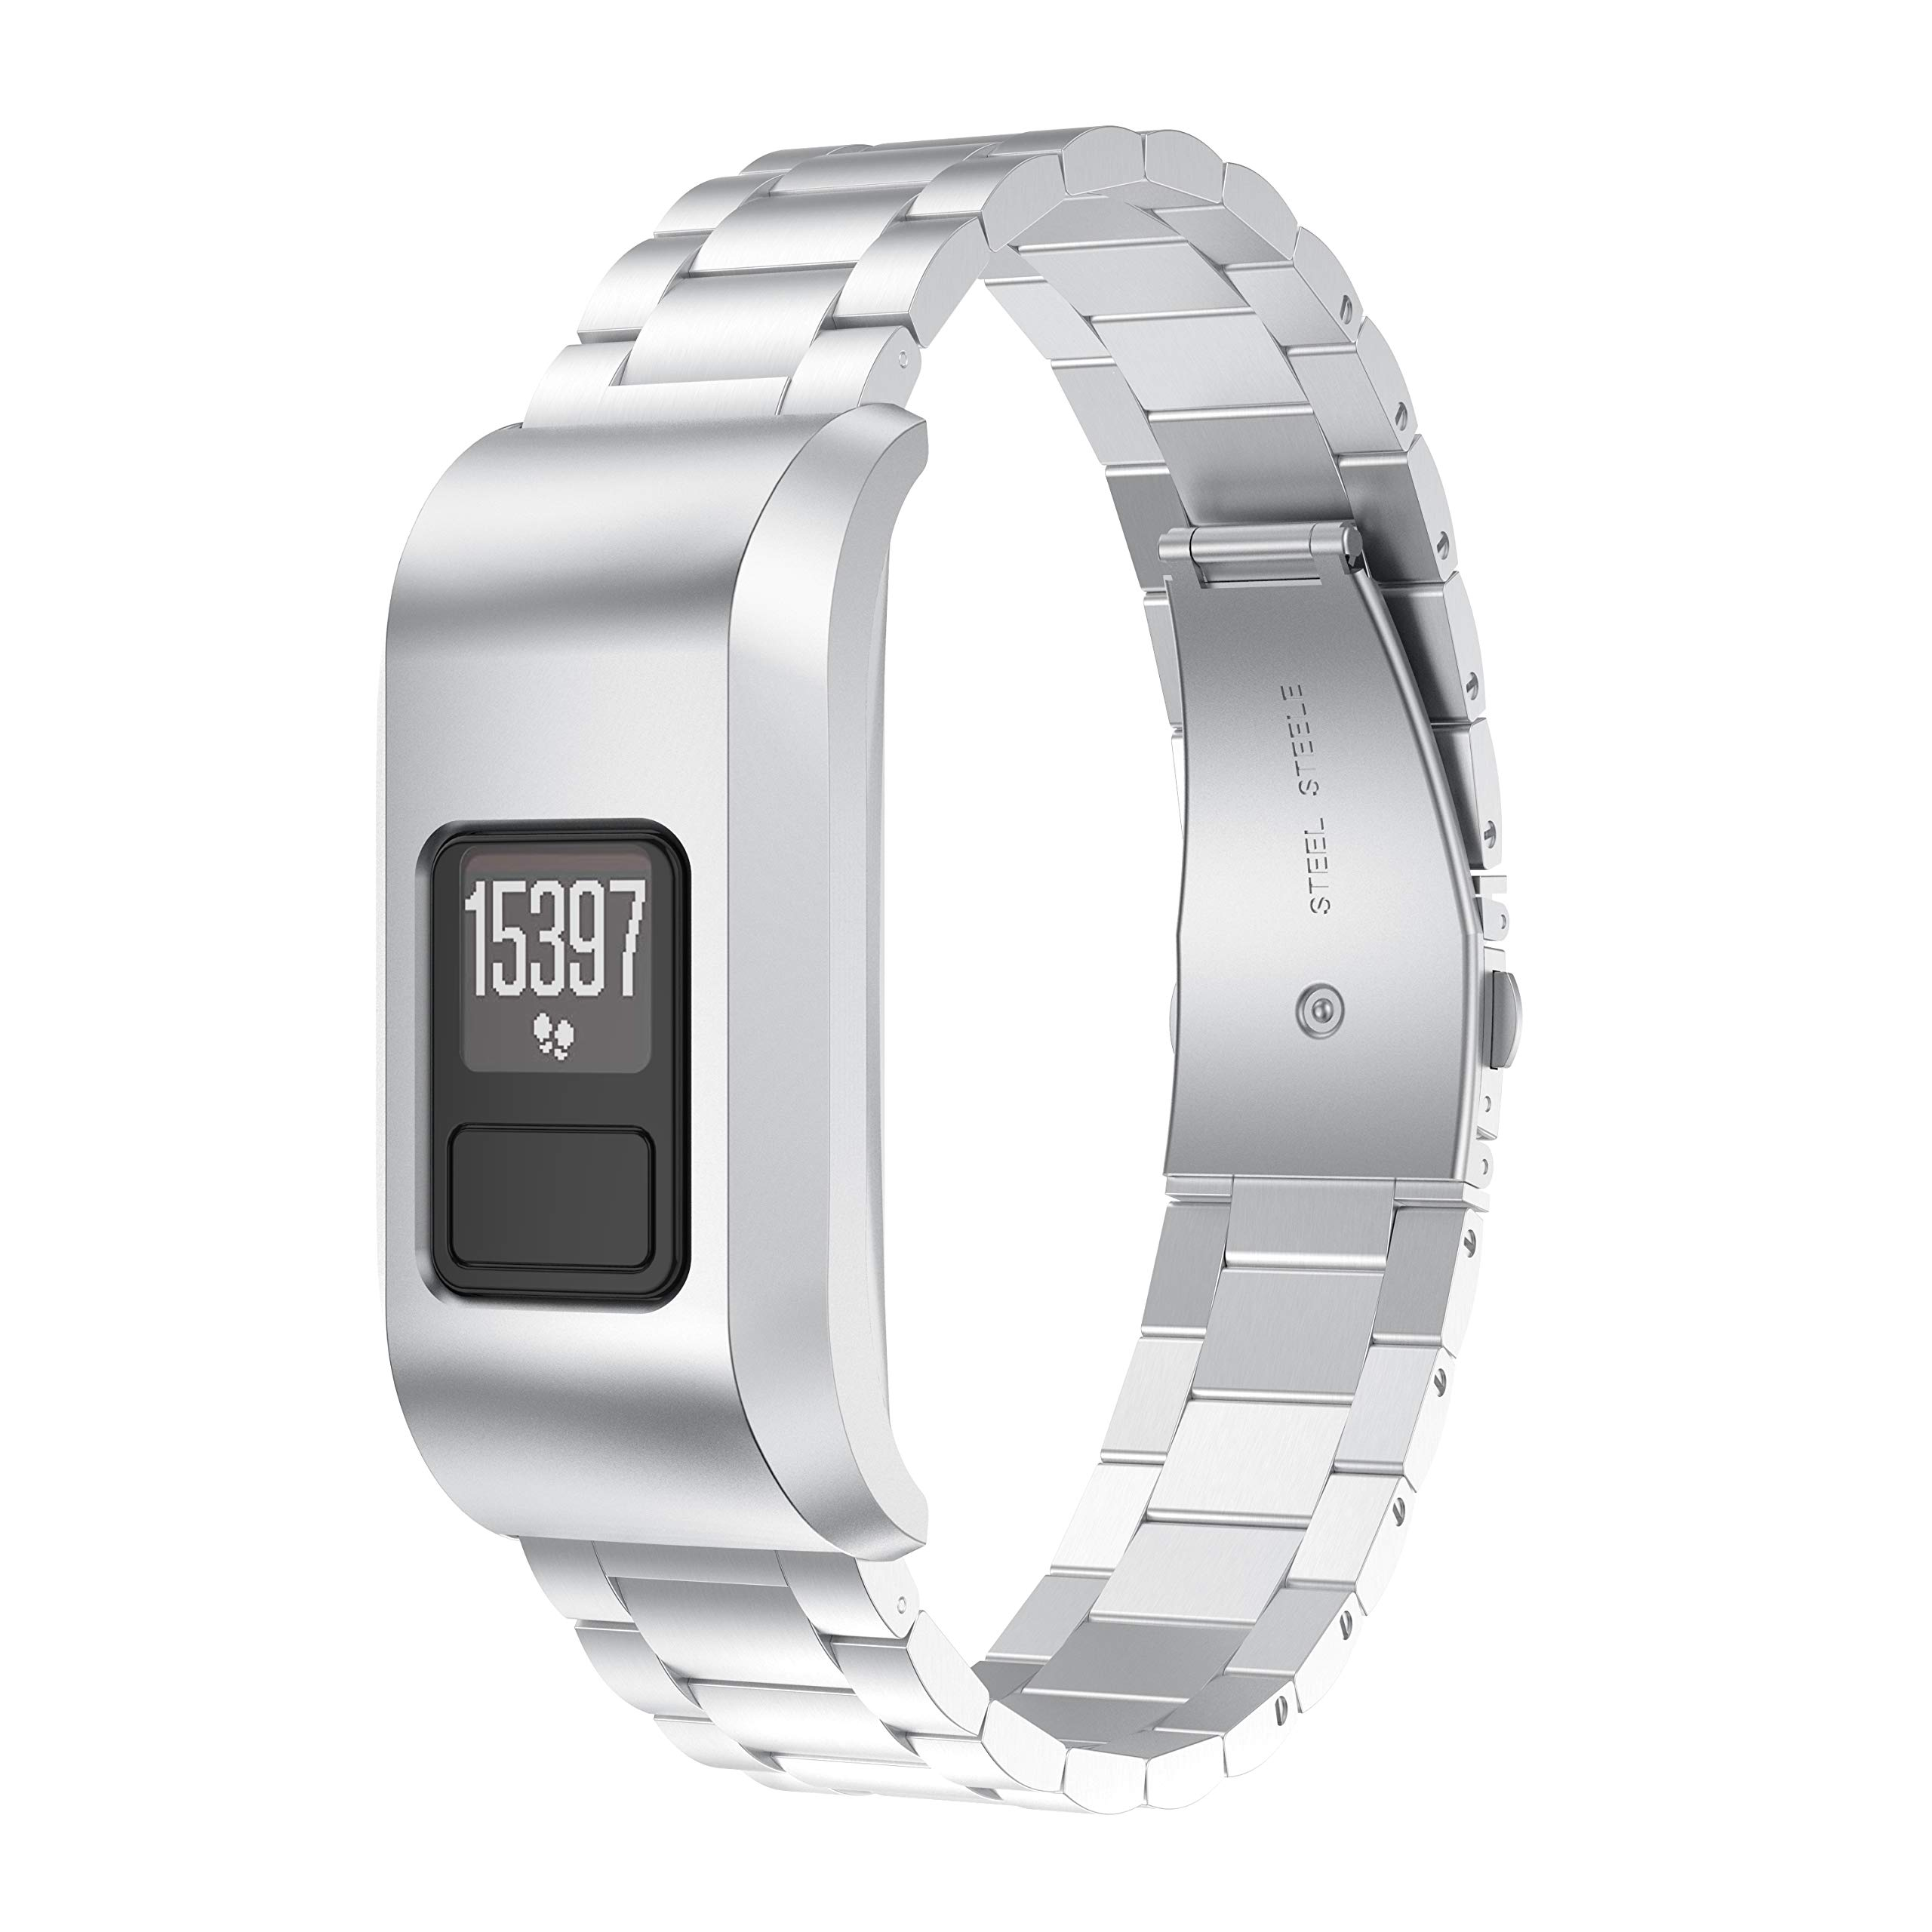 ANCOOL Compatible with Vivofit 3 Bands Stainless Steel Metal Link Watch Band Replacement for Vivofit 3 Tracker, Silver